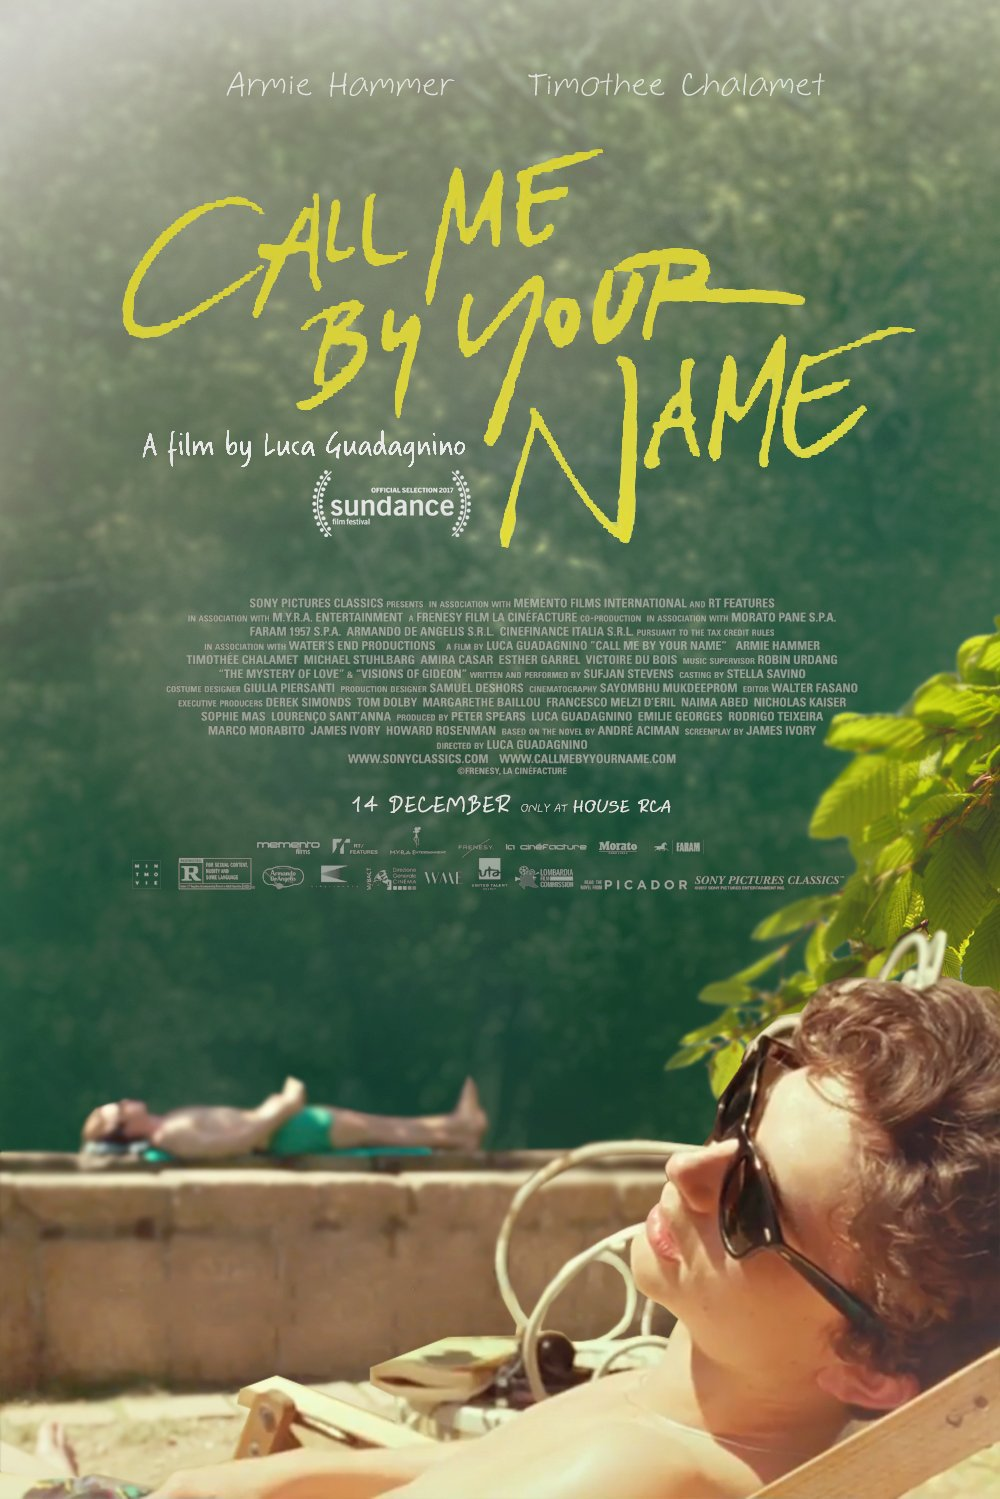 Call-Me-By-Your-Name-Film-Poster-2017